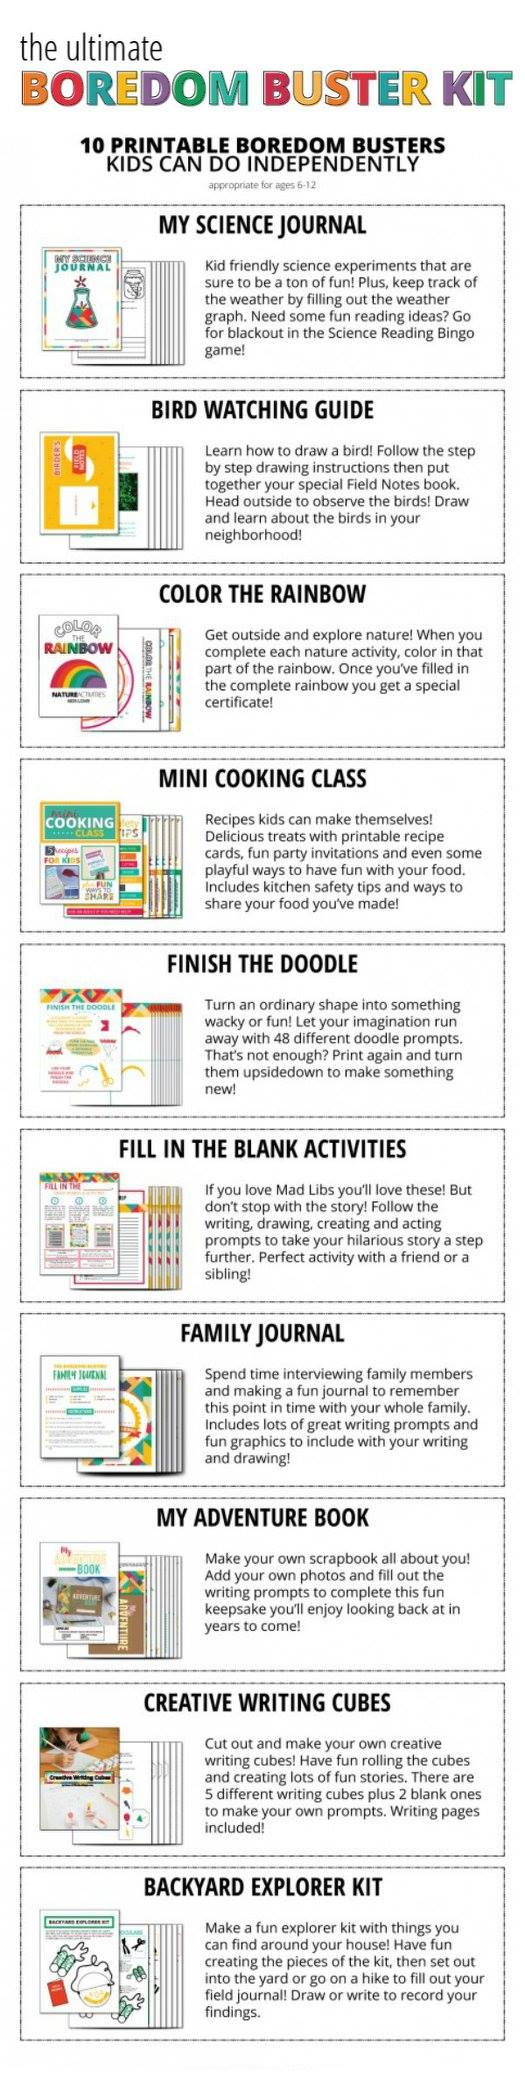 Boredom Busters kit contains *10* complete printable projects and BONUSES - moms save so much time!